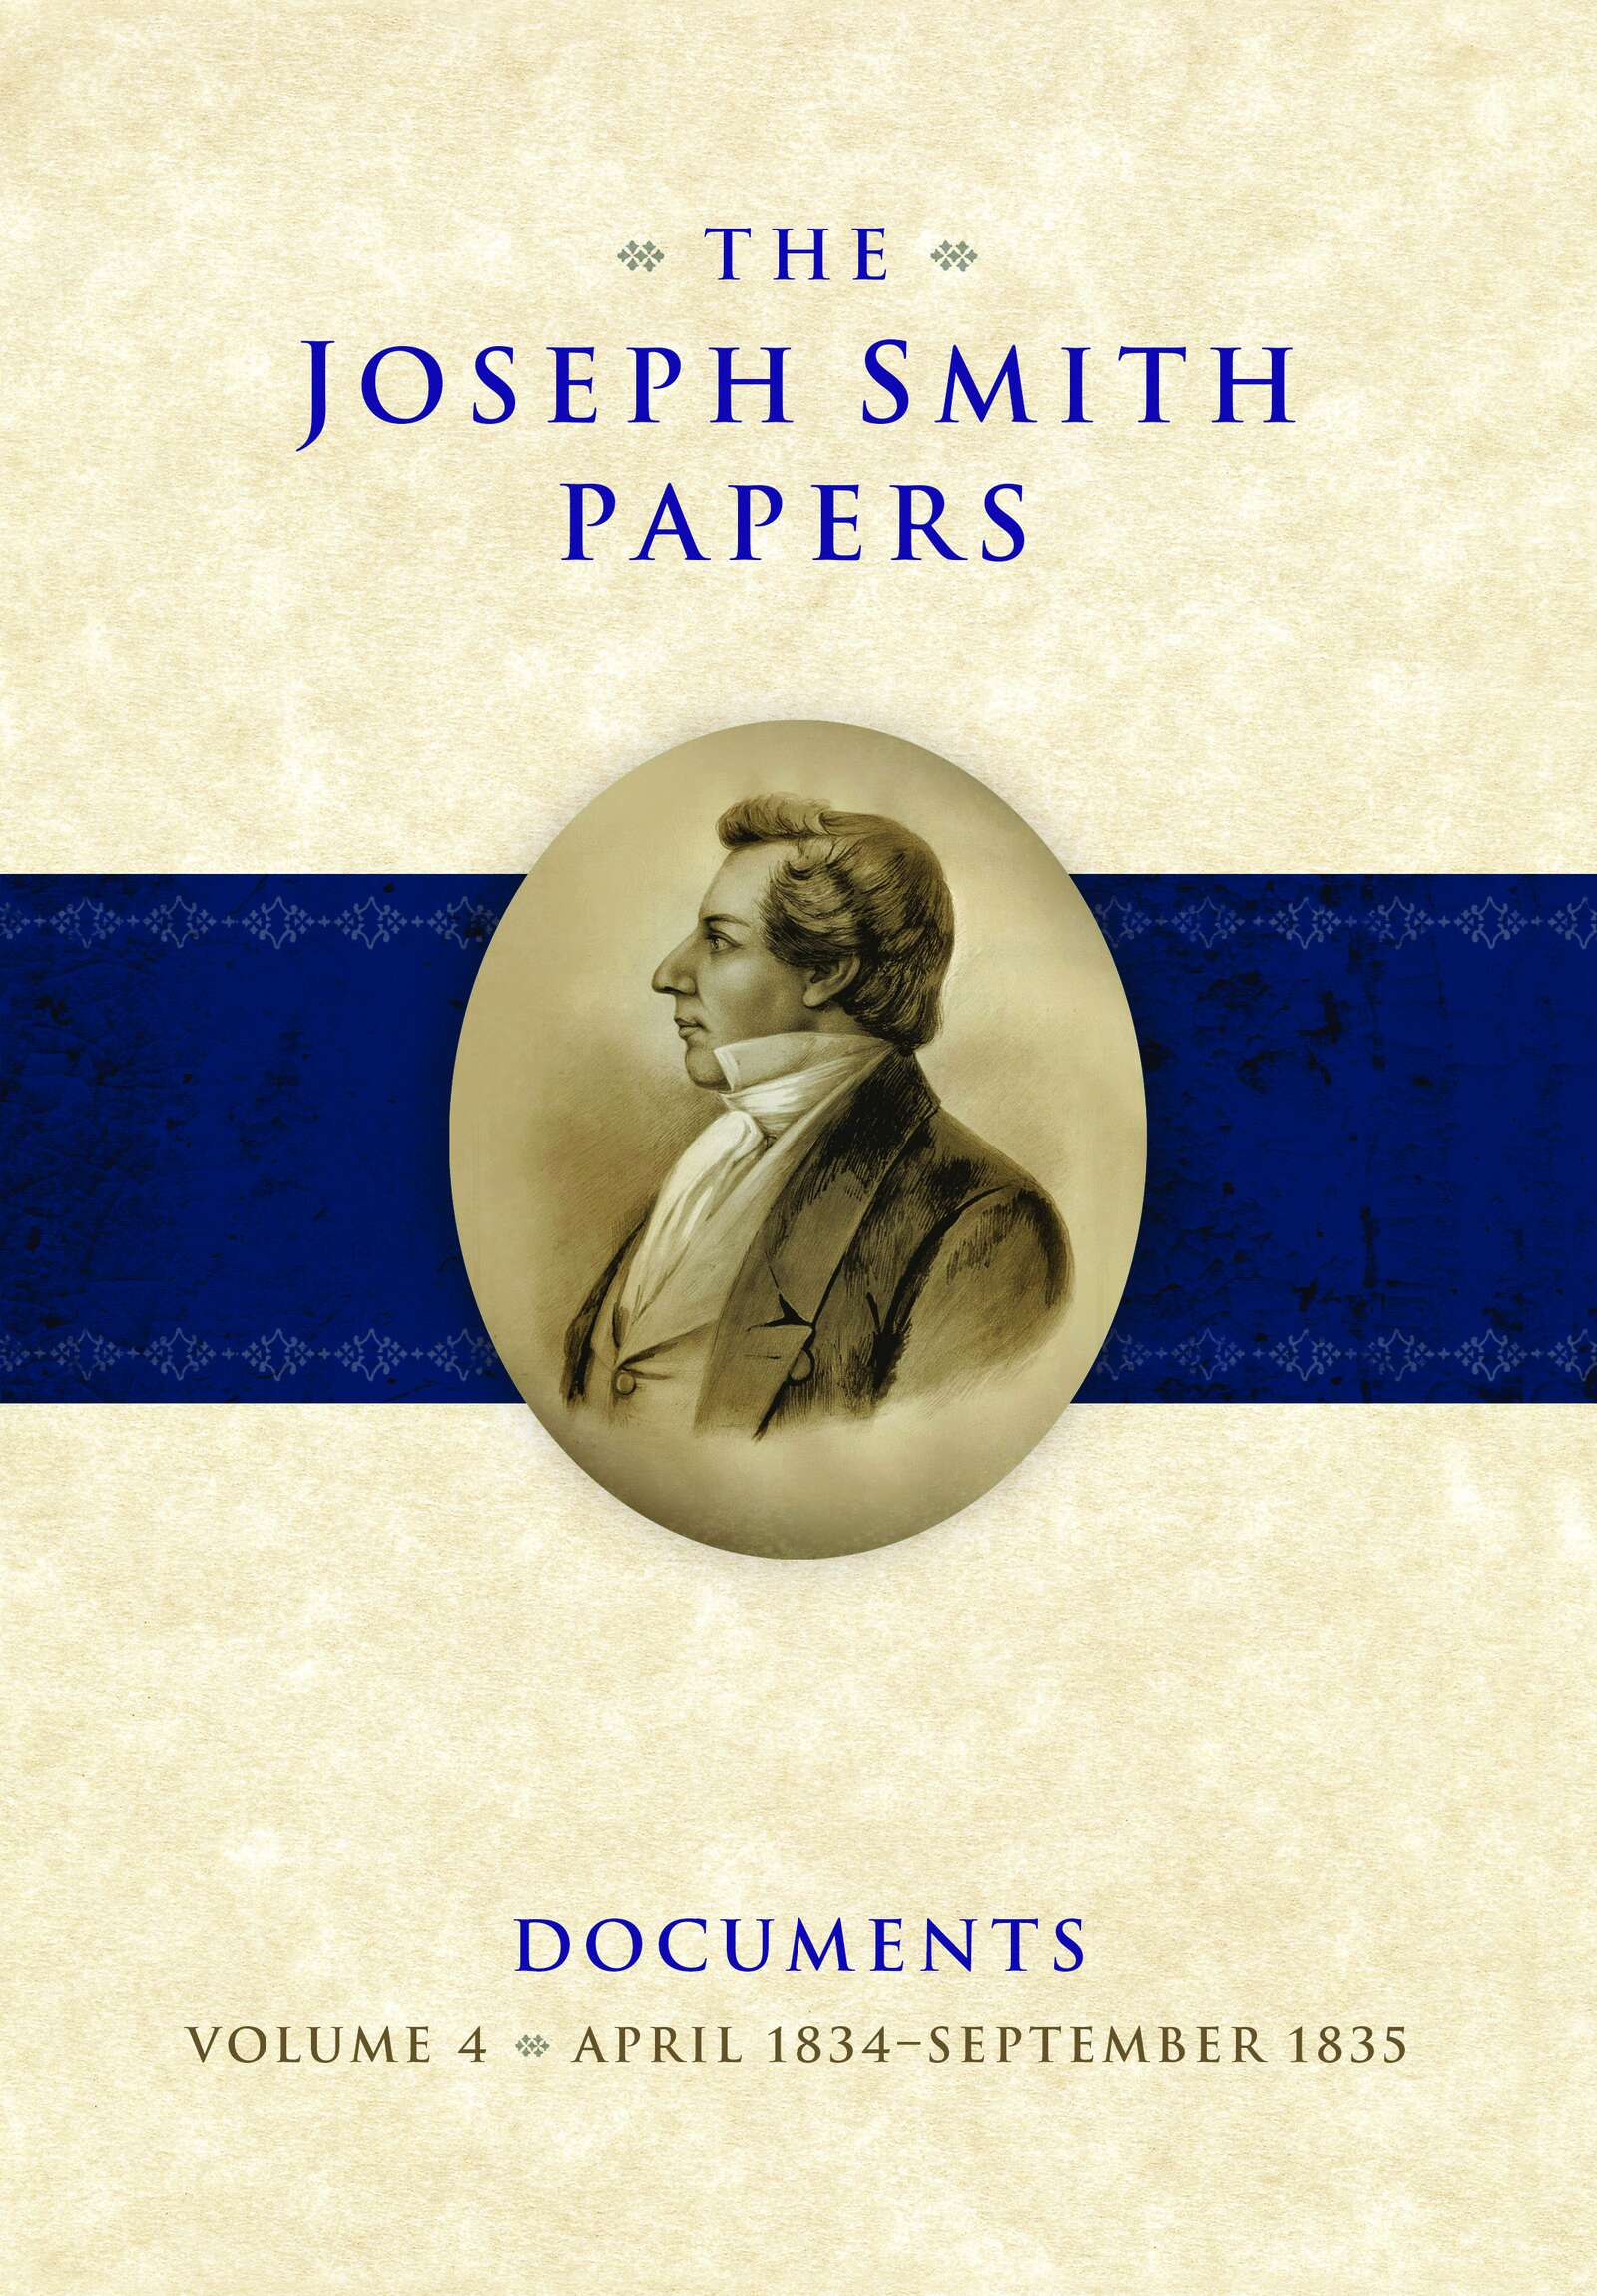 the new mormon history revisionist essays on the past Compre o livro the mormon hierarchy: origins of power  he is the editor of the new mormon history: revisionist essays  rethinking america's western past.